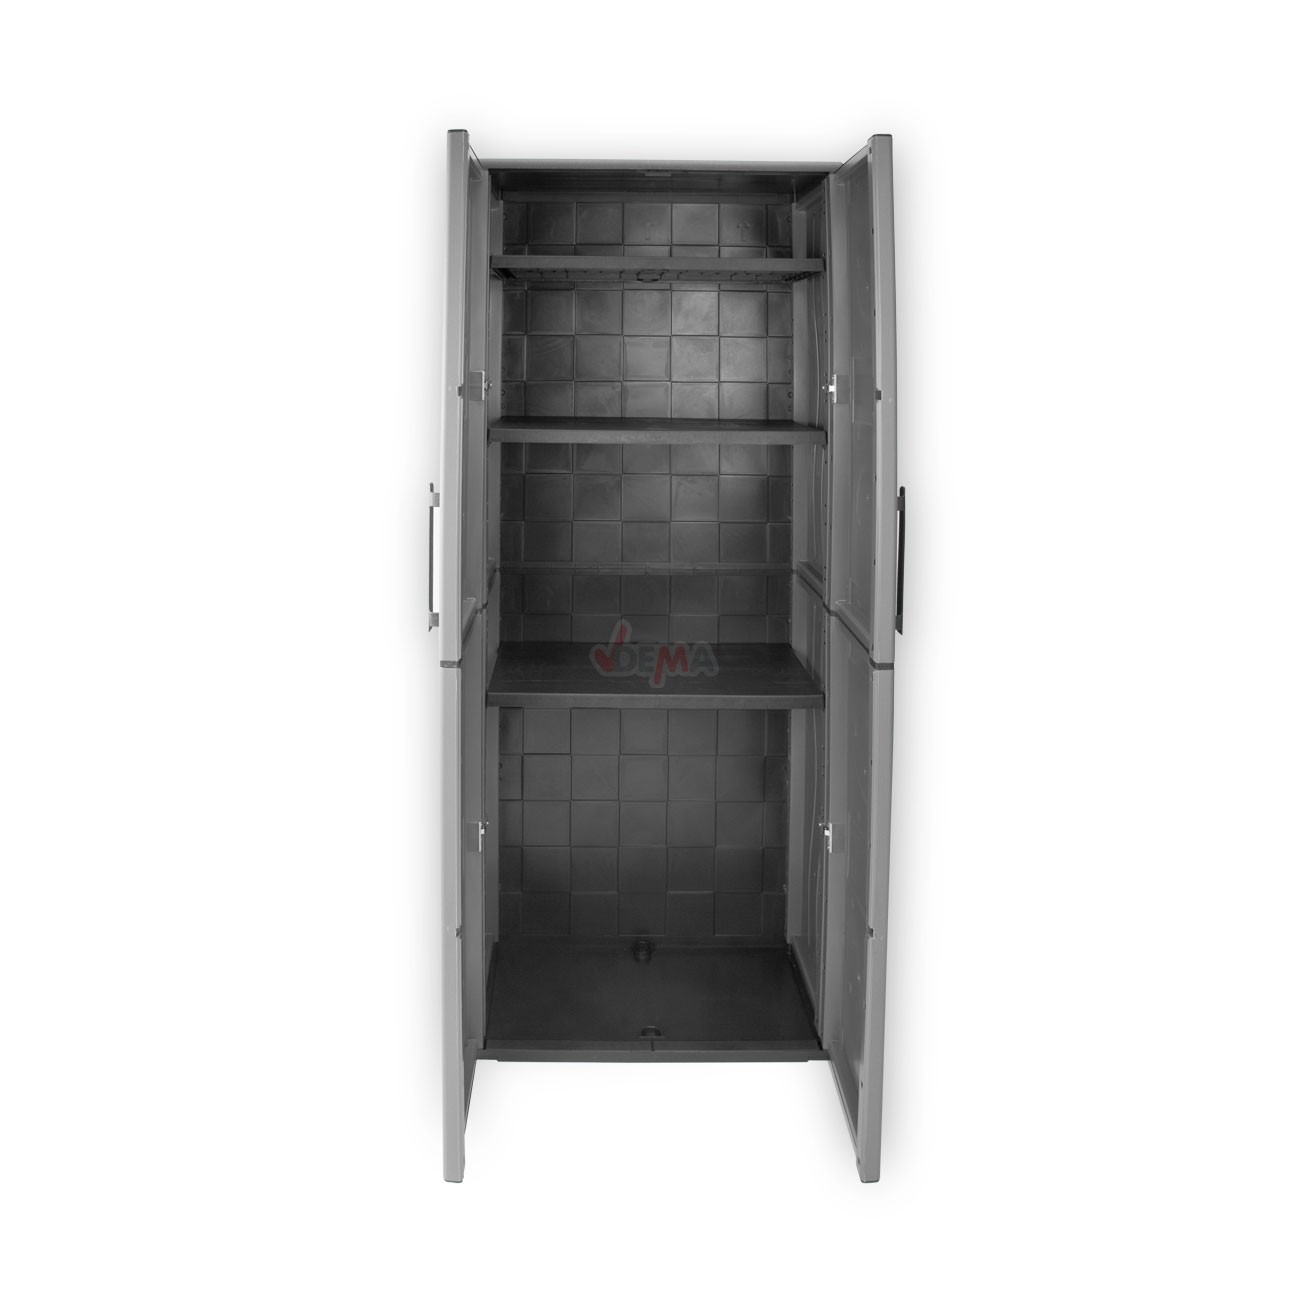 xxl kunststoffschrank gartenschrank haushaltsschrank 2t rig 68x37x163 cm 3 b den ebay. Black Bedroom Furniture Sets. Home Design Ideas